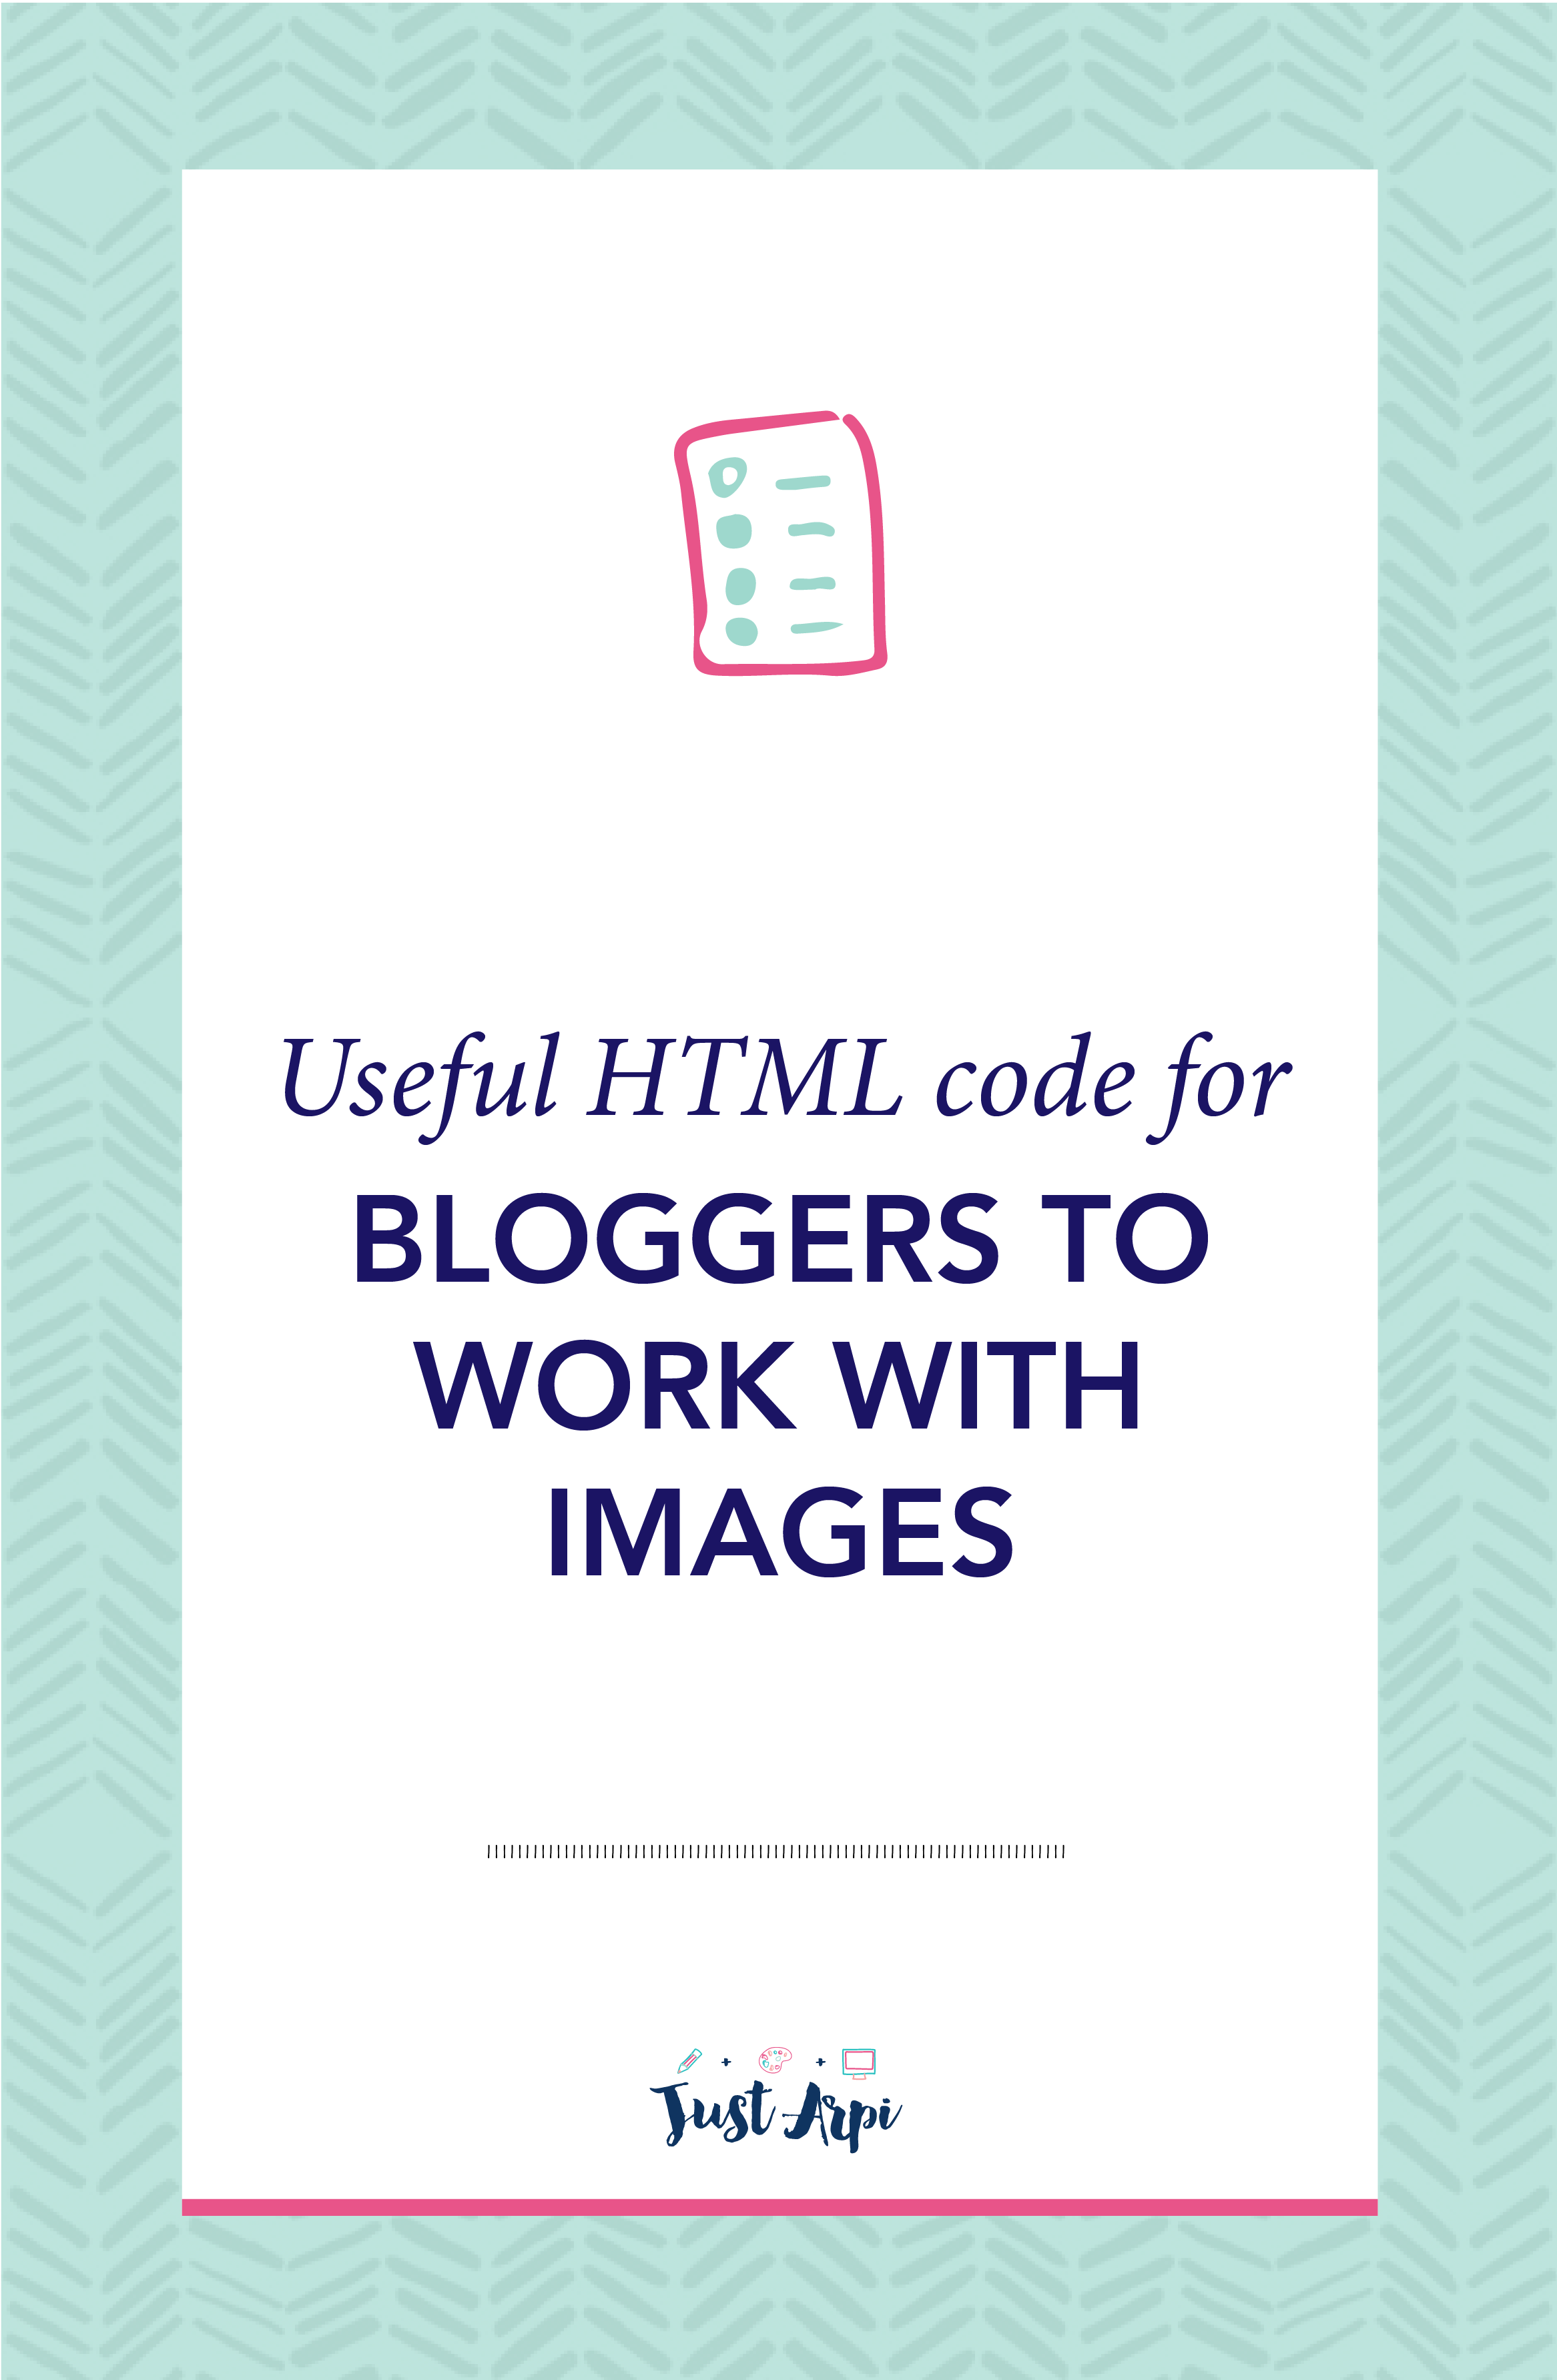 HTML code for images for bloggers-04